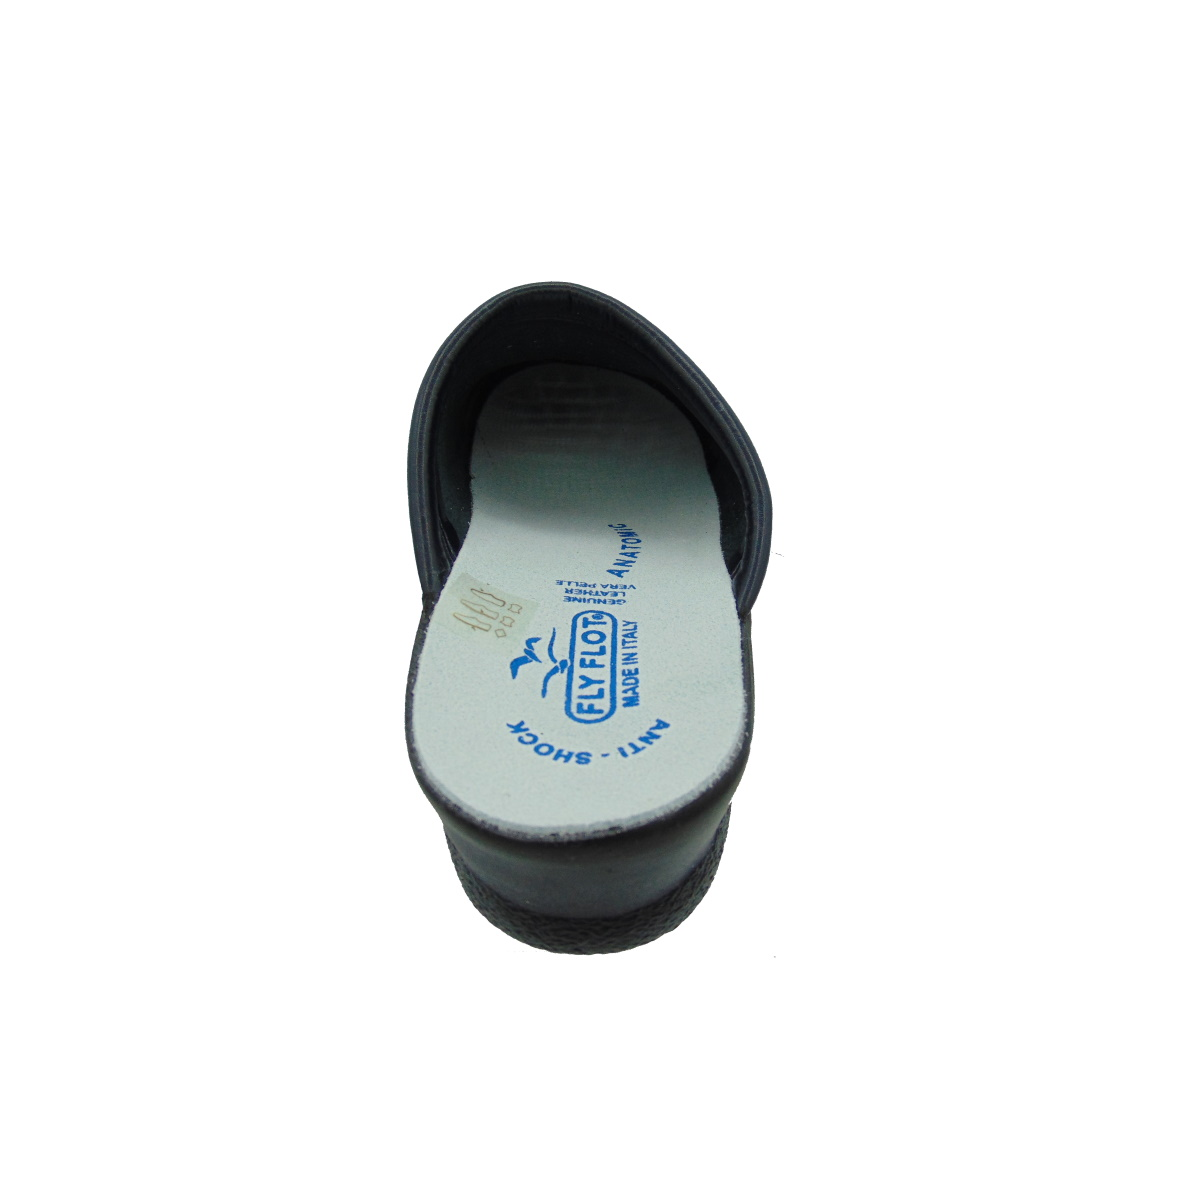 Fly flot 85094 blu ciabatte sanitarie tomania sottopiede in pelle